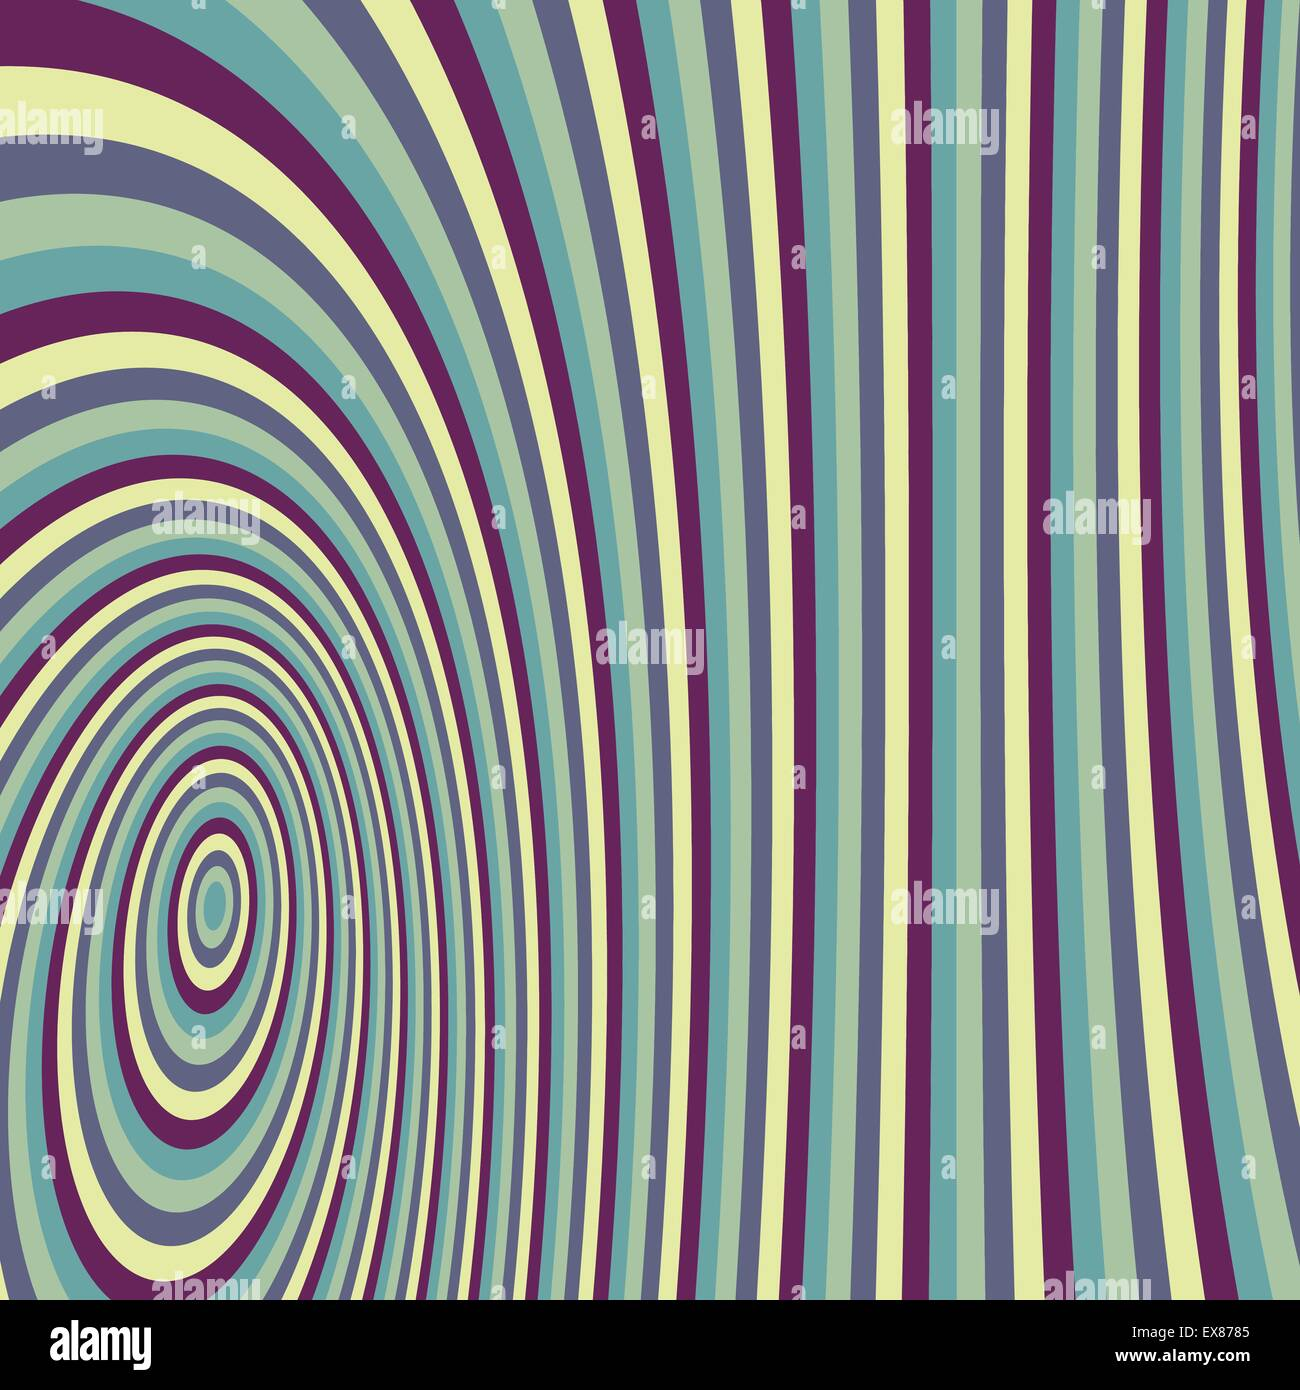 Abstract swirl background. Pattern with optical illusion. Vector illustration. - Stock Image